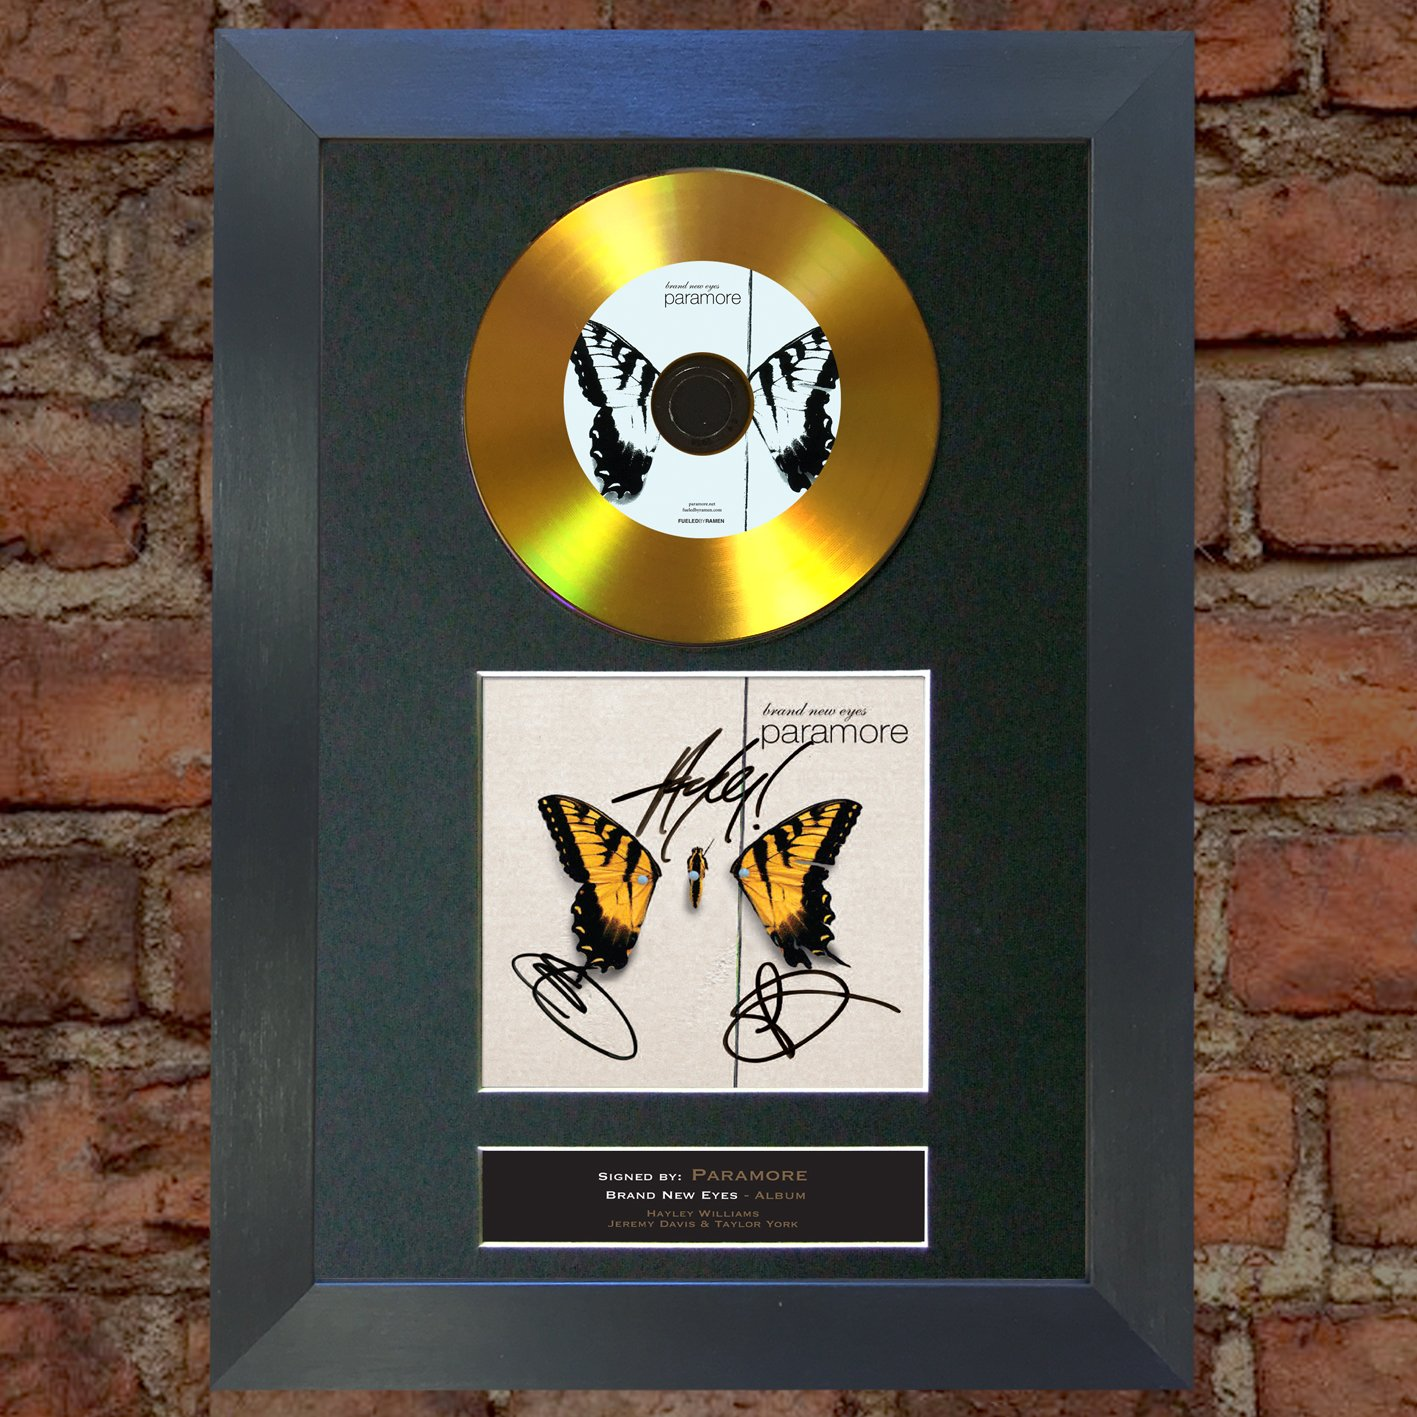 #119 GOLD DISC PARAMORE Brand New Eyes Album Signed Autograph Mounted Reproduction A4 Print (Black Frame) The Autograph Collector